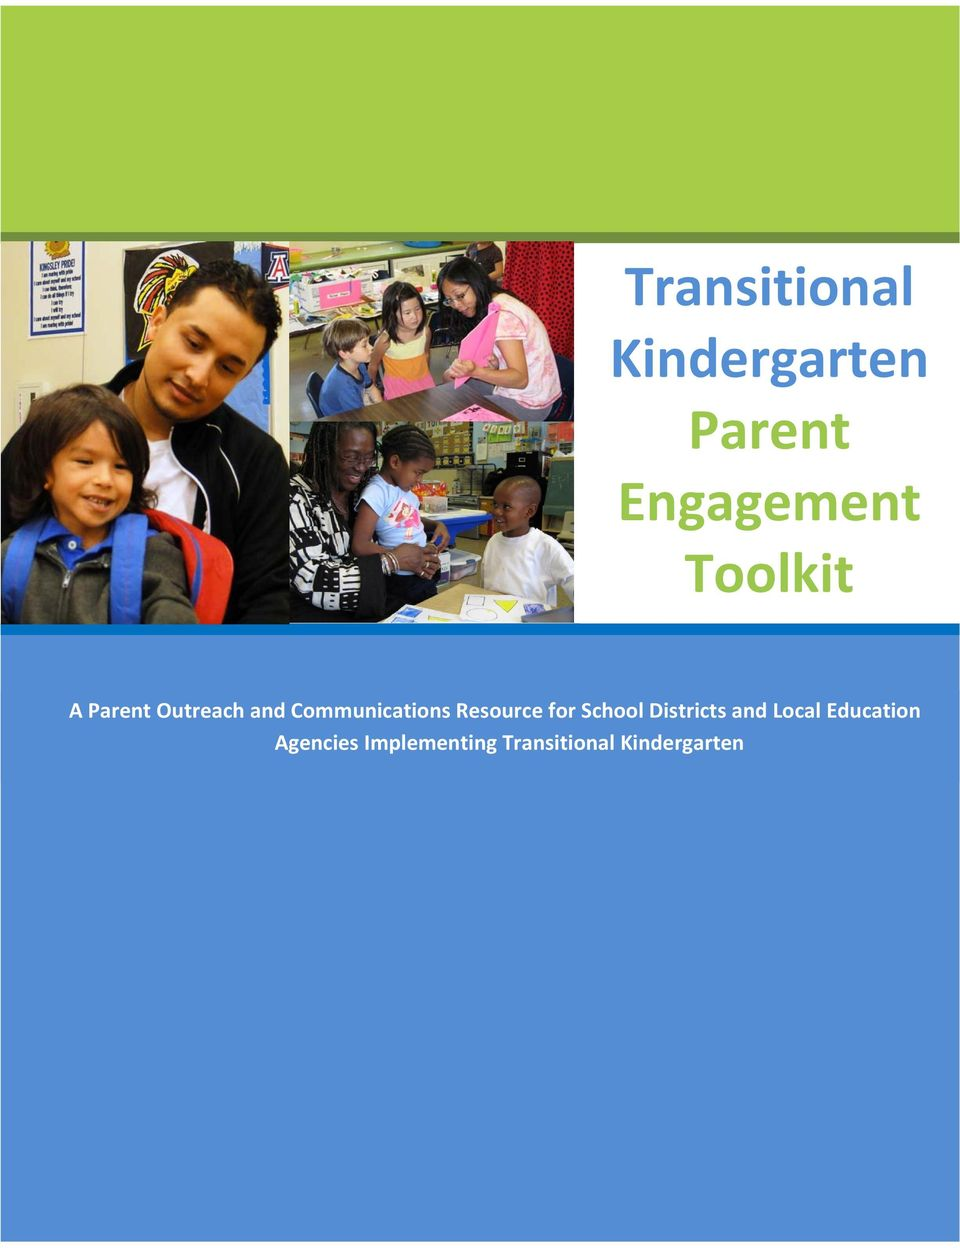 Resource for School Districts and Local